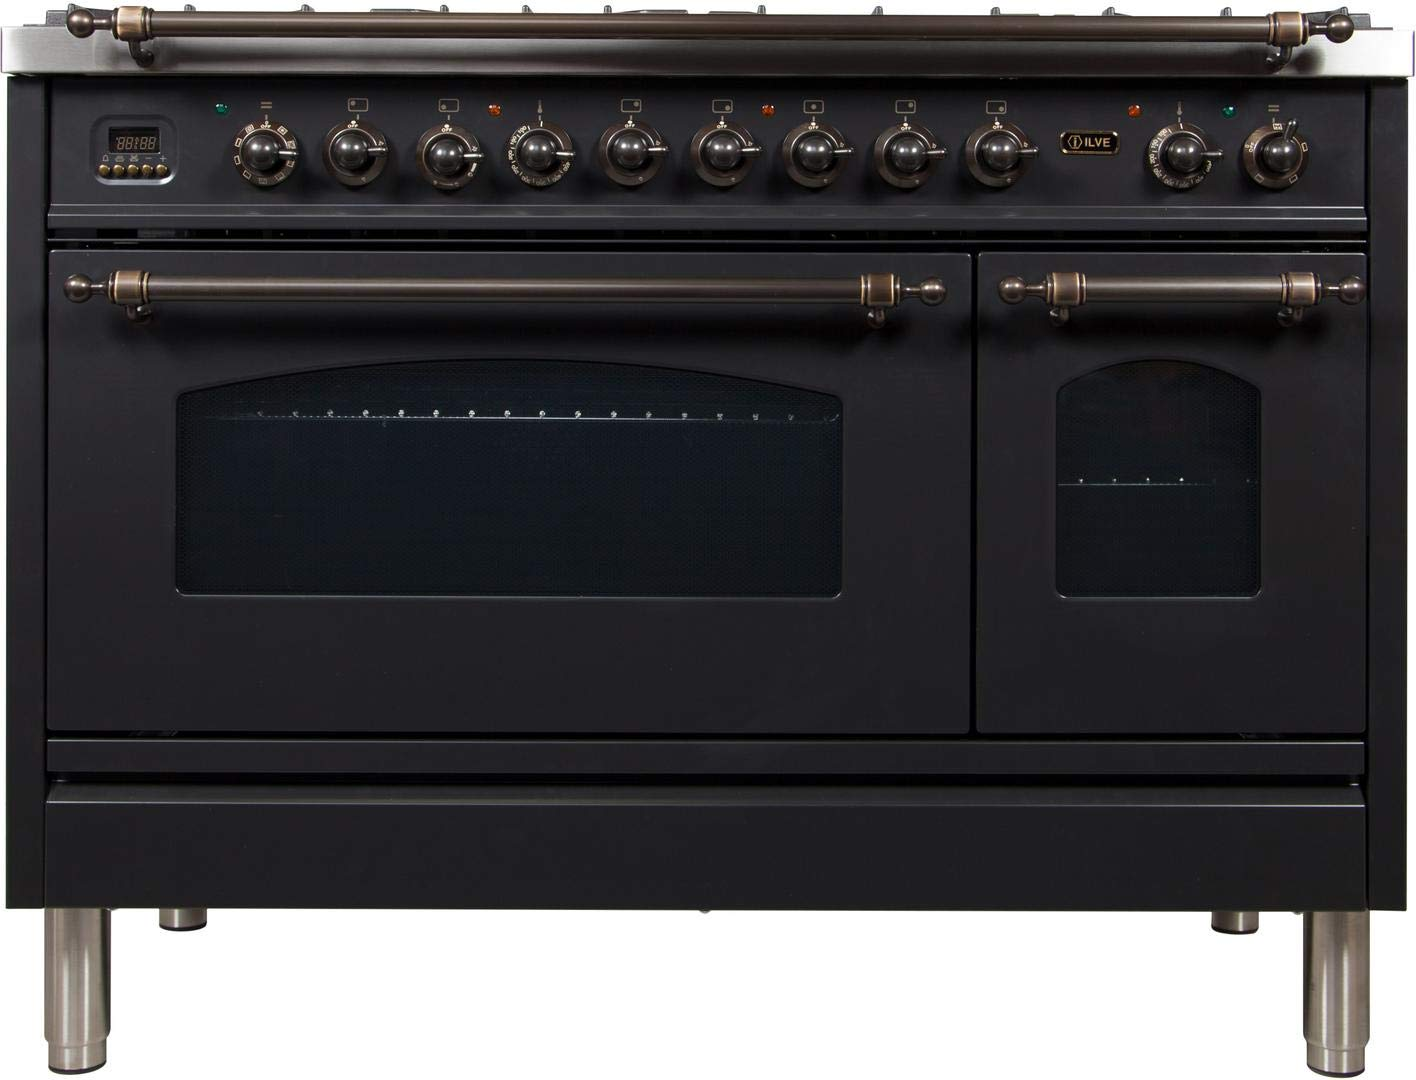 Ilve UPN120FDMPMY Nostalgie Series 48 Inch Dual Fuel Convection Freestanding Range, 7 Sealed Brass Burners, 5 cu.ft. Total Oven Capacity in Matte Graphite, Bronze Trim (Natural Gas)